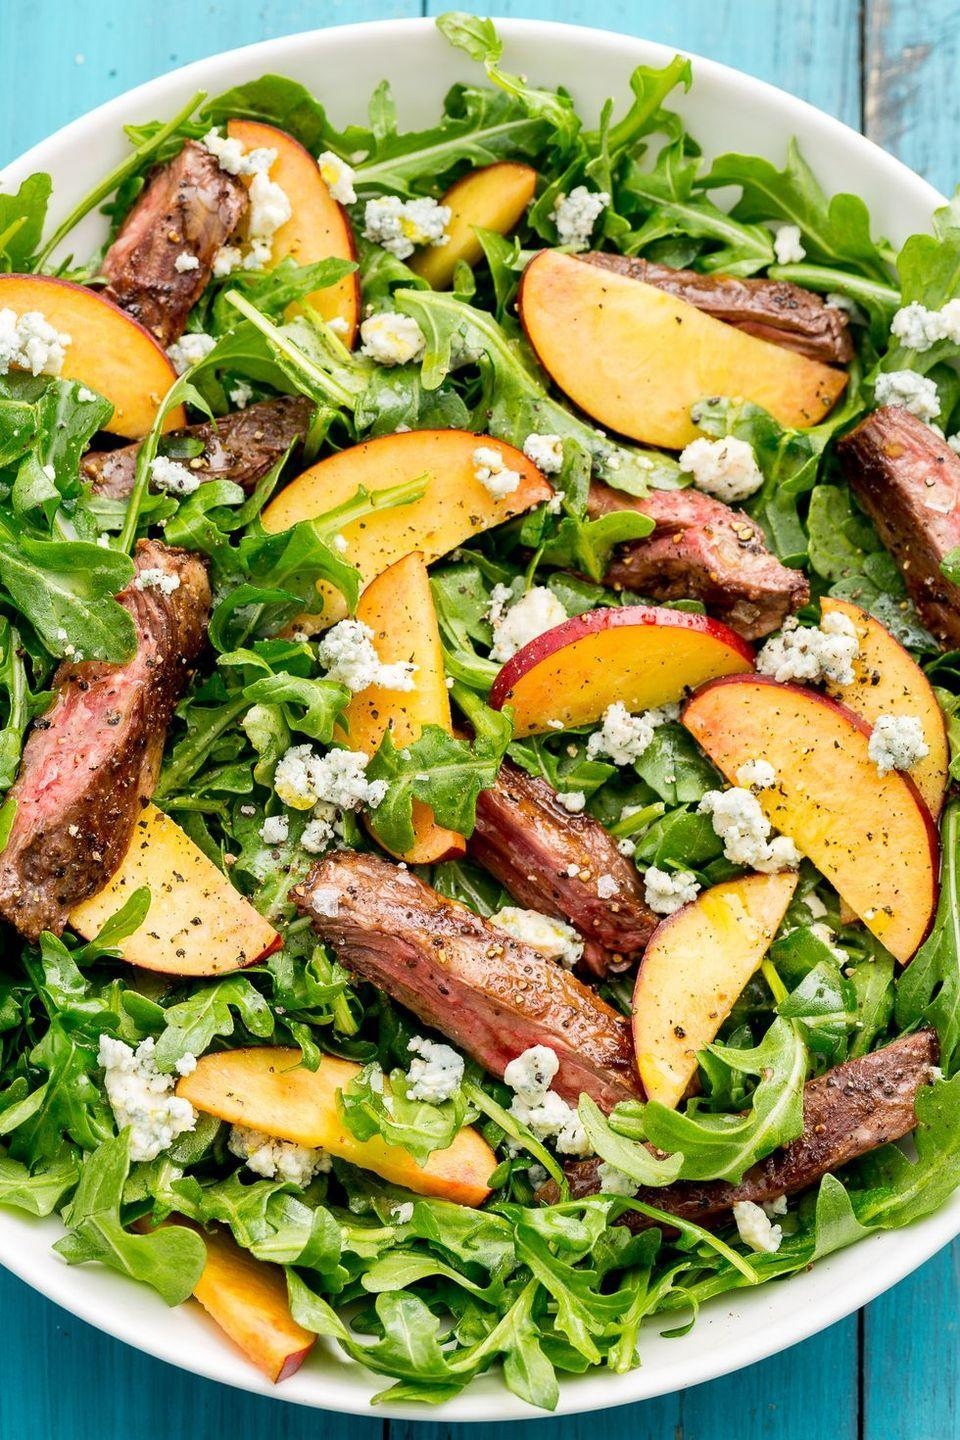 "<p>Peppery rocket is the perfect vessel for this savoury-sweet combo.</p><p>Get the <a href=""http://www.delish.com/uk/cooking/recipes/a32998377/balsamic-grilled-steak-salad-with-peaches-recipe/"" rel=""nofollow noopener"" target=""_blank"" data-ylk=""slk:Balsamic Grilled Steak Salad with Peaches"" class=""link rapid-noclick-resp"">Balsamic Grilled Steak Salad with Peaches</a> recipe.</p>"